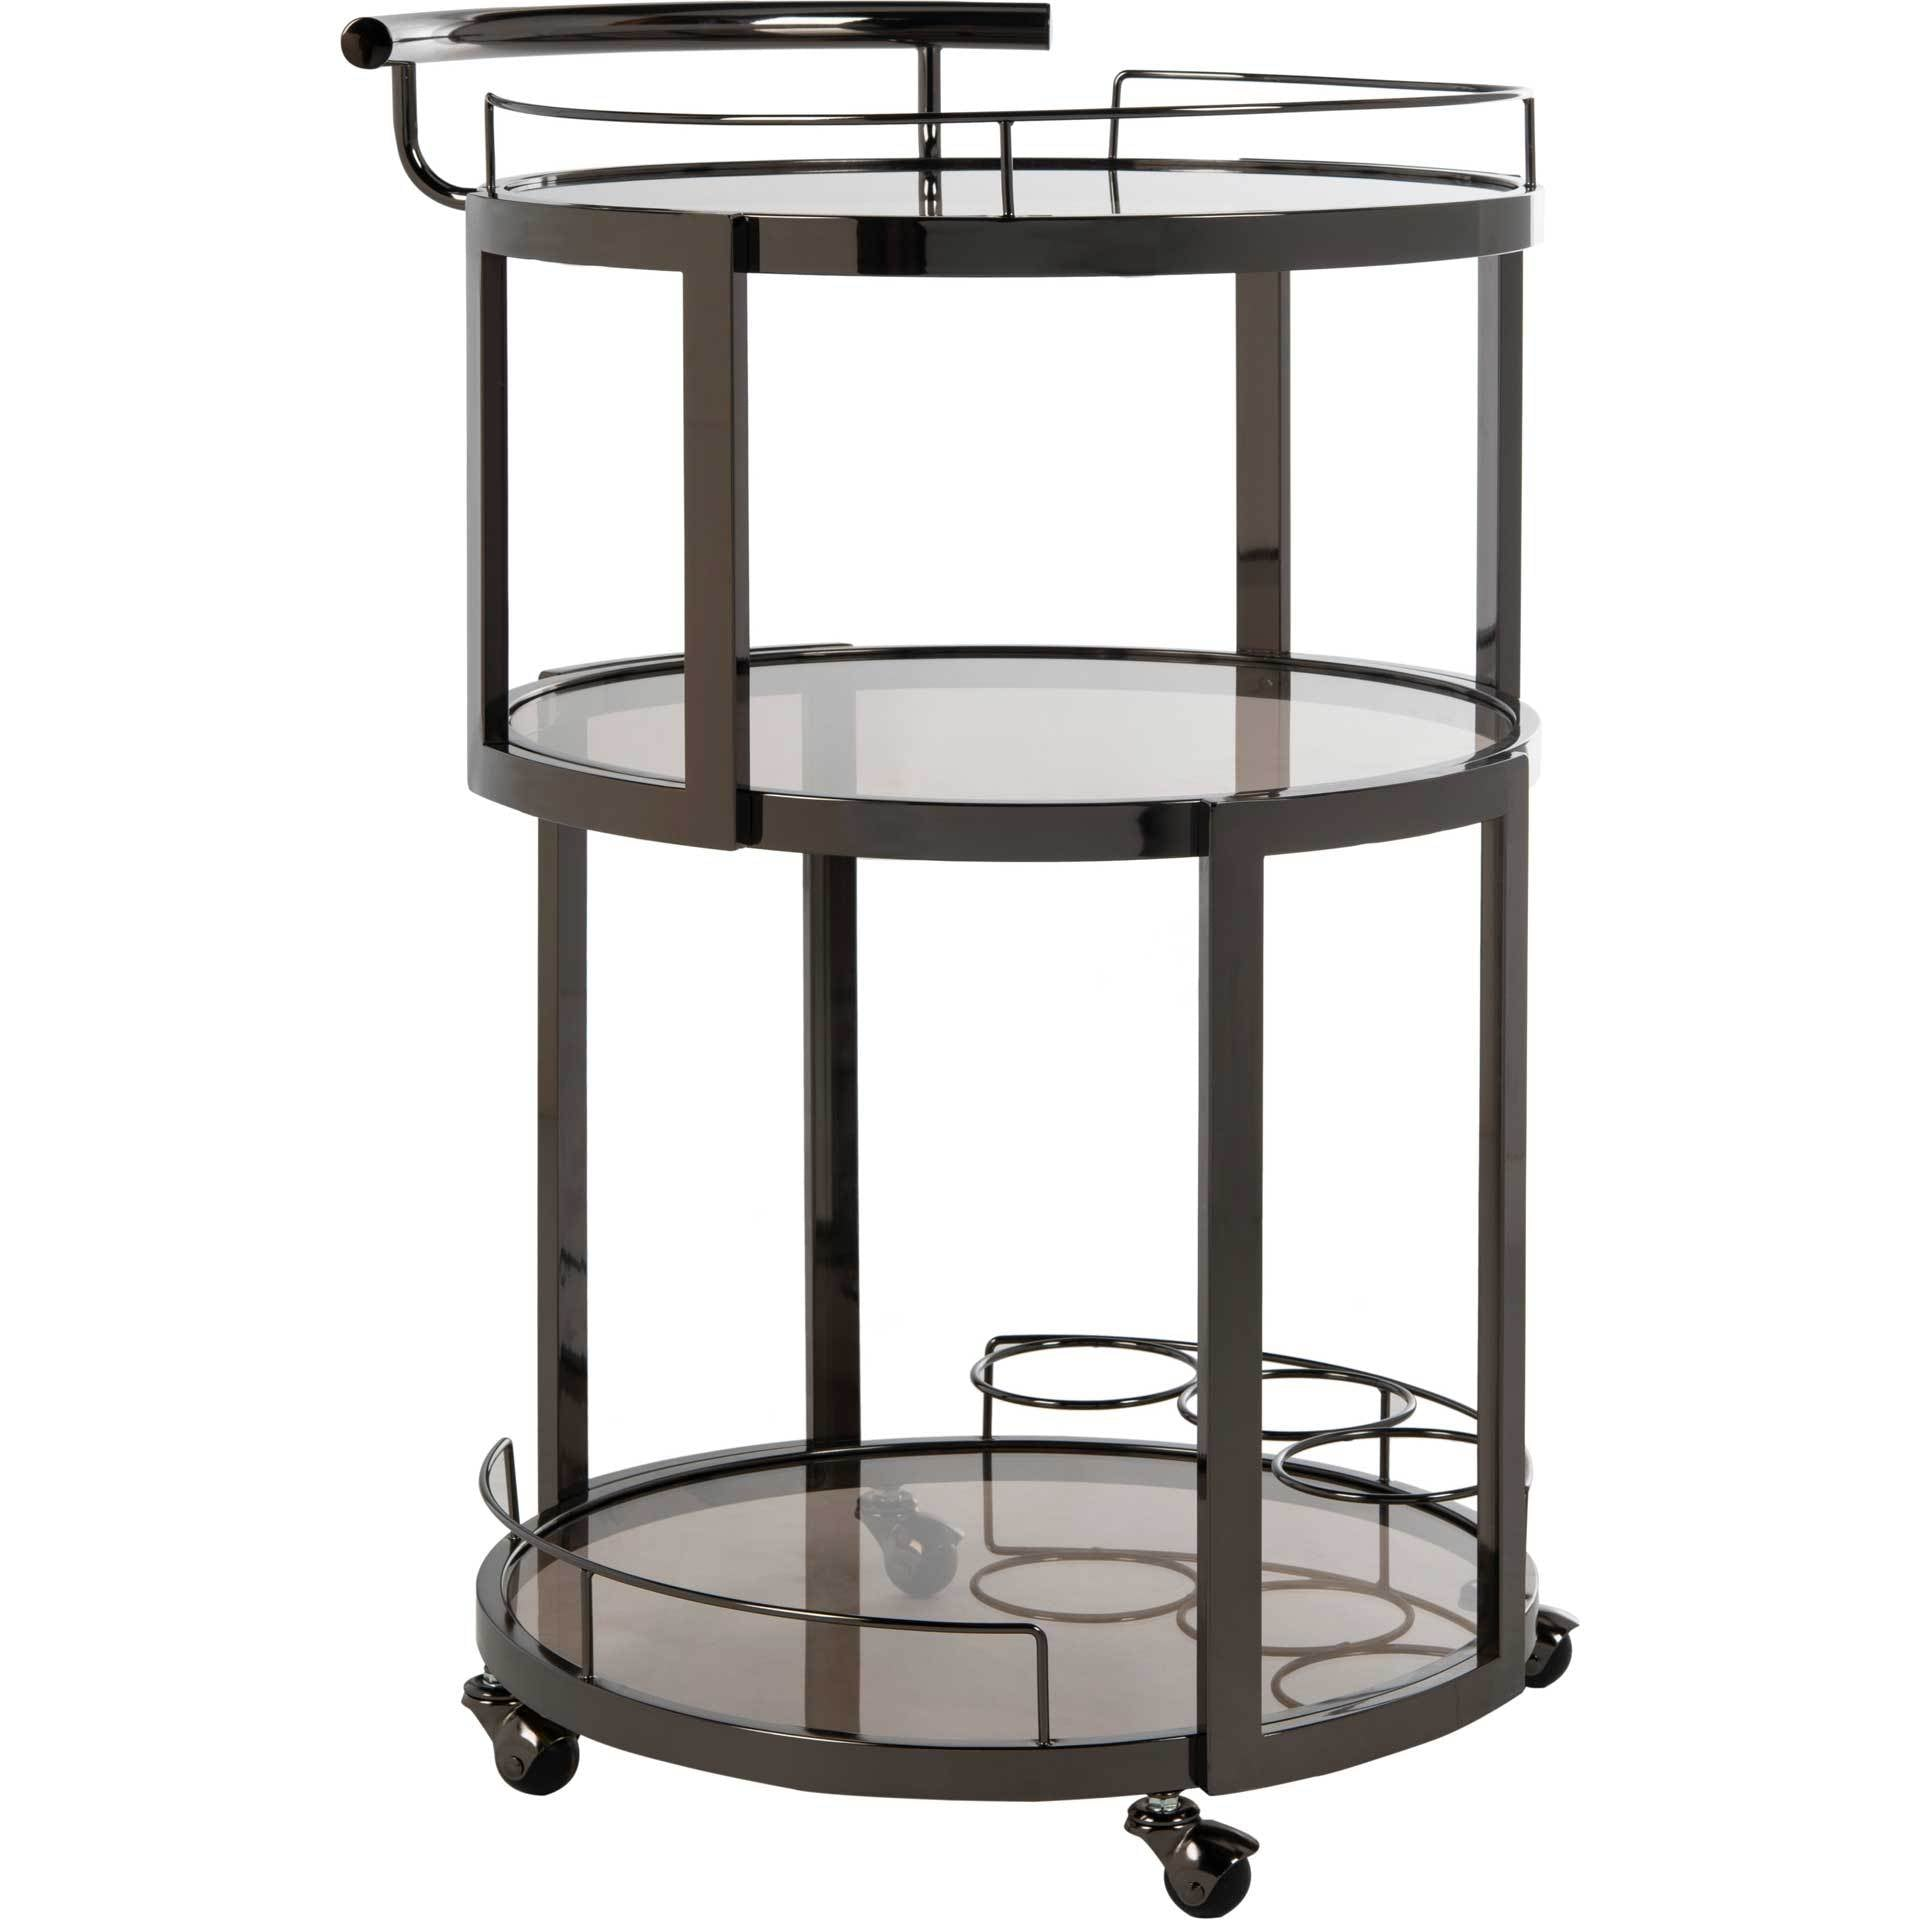 Ricky 3 Tier Round Bar Cart and Wine Rack Gun Metal/Tinted Glass